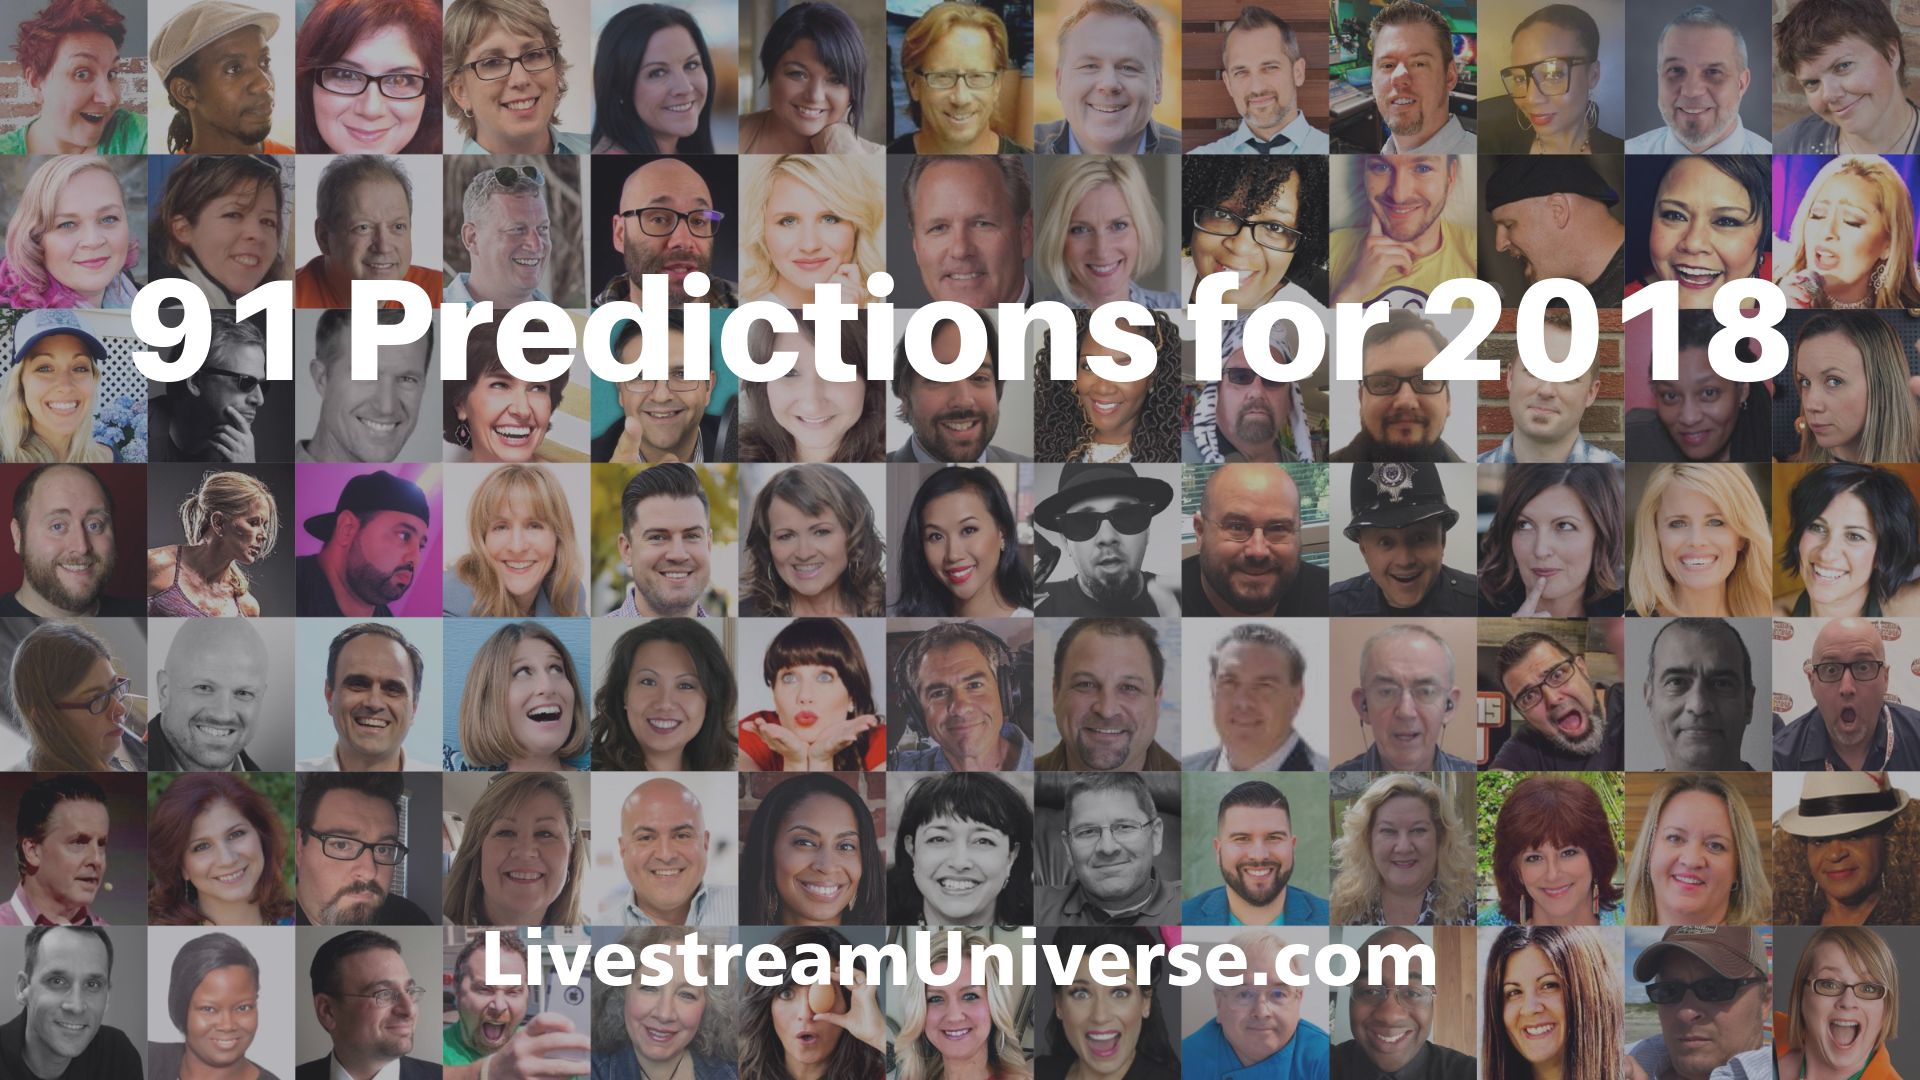 91 Predictions for 2018 Livestream Universe